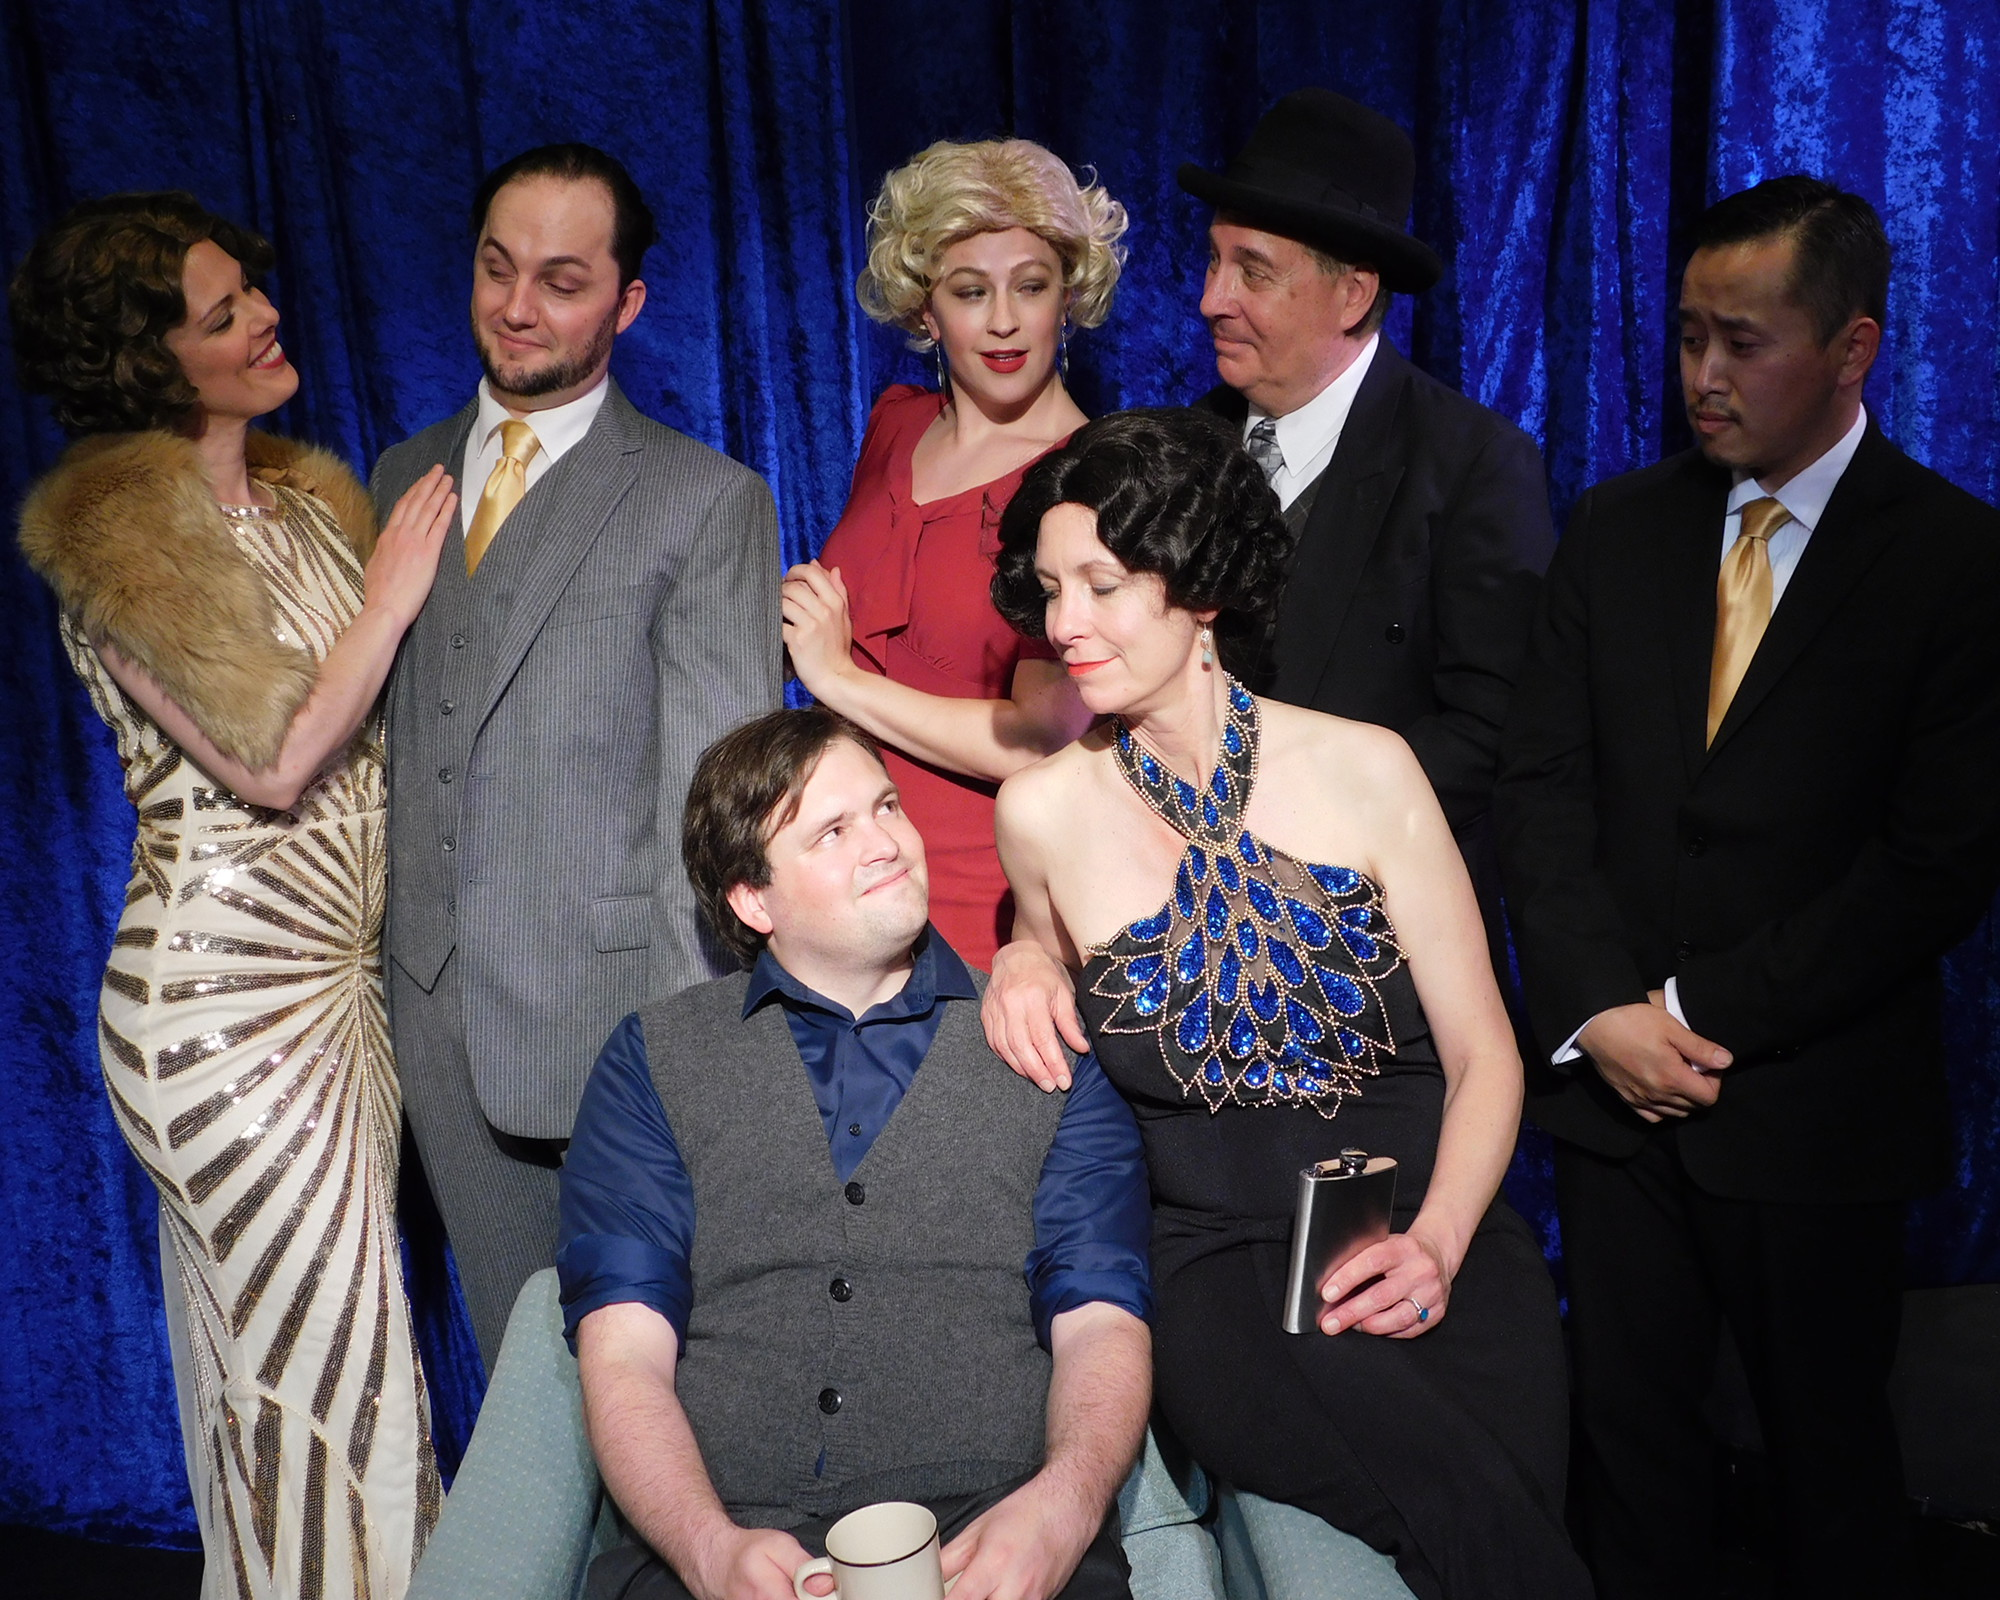 Man in Chair finds himself surrounded by the cast members of his favorite 1920's musical   The Drowsy Chaperone.   Front: Man in Chair (William Rhea) and the Chaperone (Amy Meyers). Rear: Janet Van De Graaff (Minna Rogers), Robert Martin (James Schott), Kitty (Bethany Mindrum), Victor Feldzieg (Charles Evans) and George (Jai Cha).